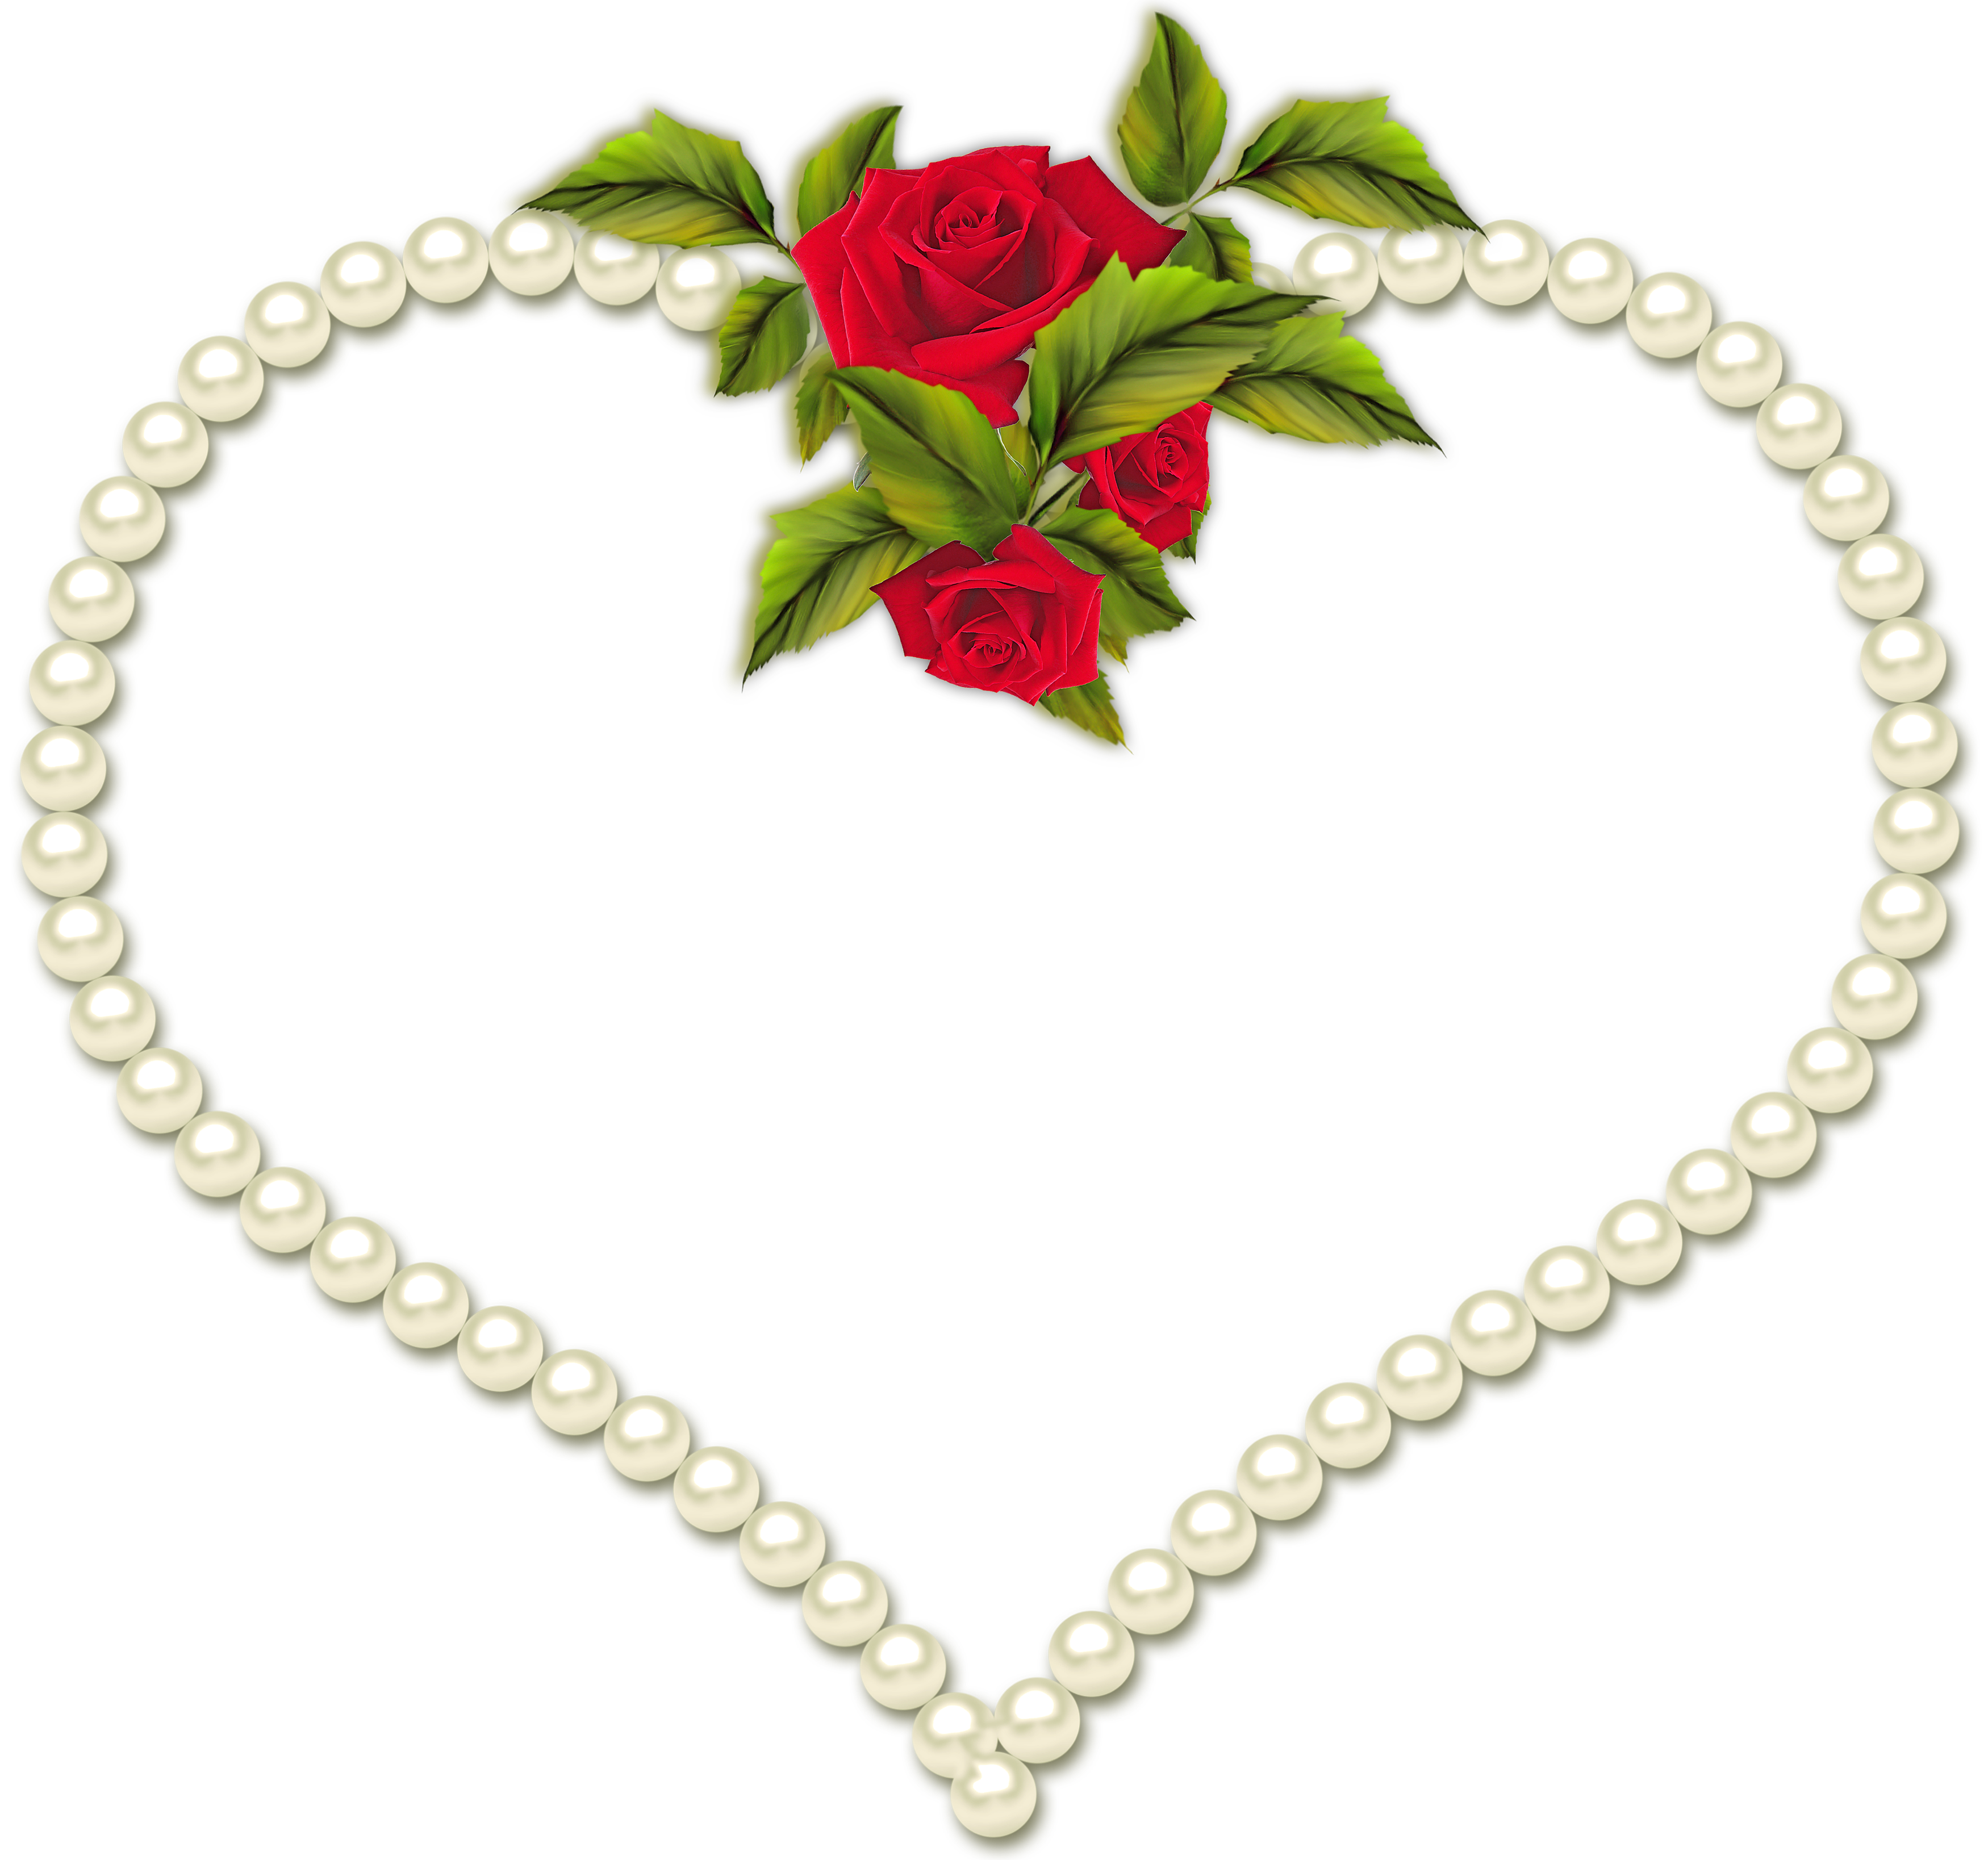 Pearl transparent with roses. Heart frame png